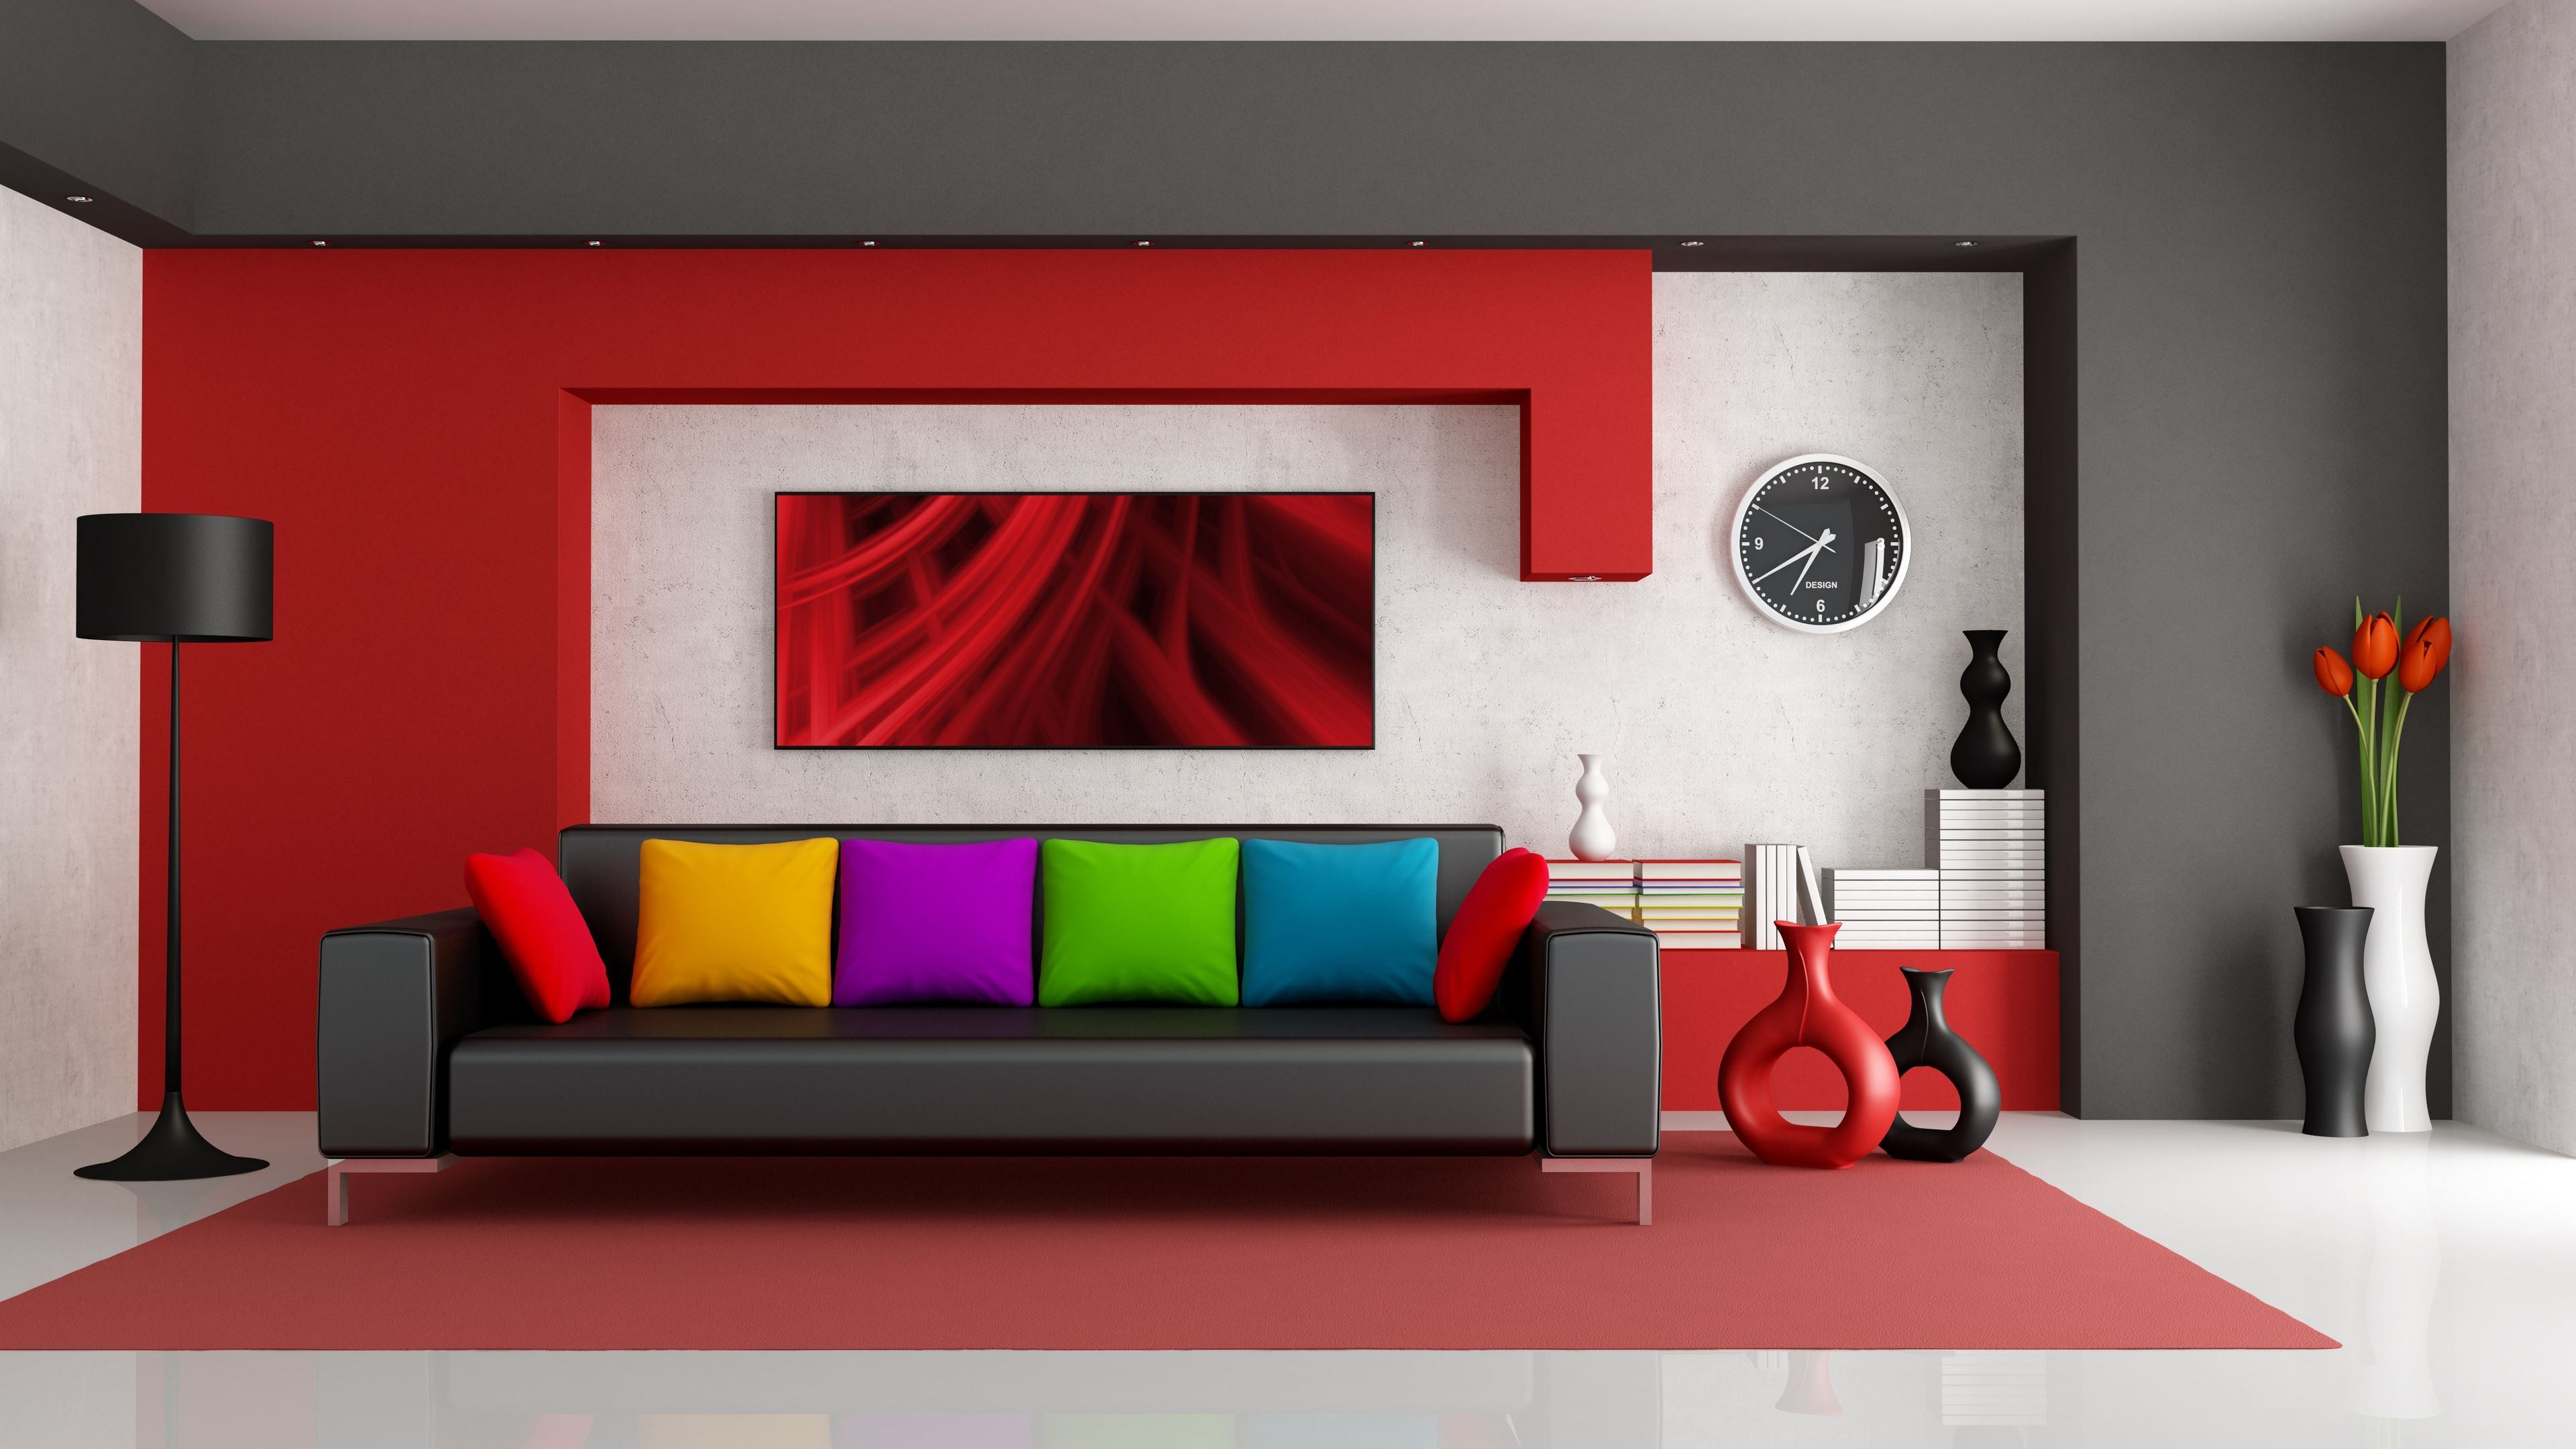 Colorful Living Room Ultra Hd Wallpaper Imgprix Com High